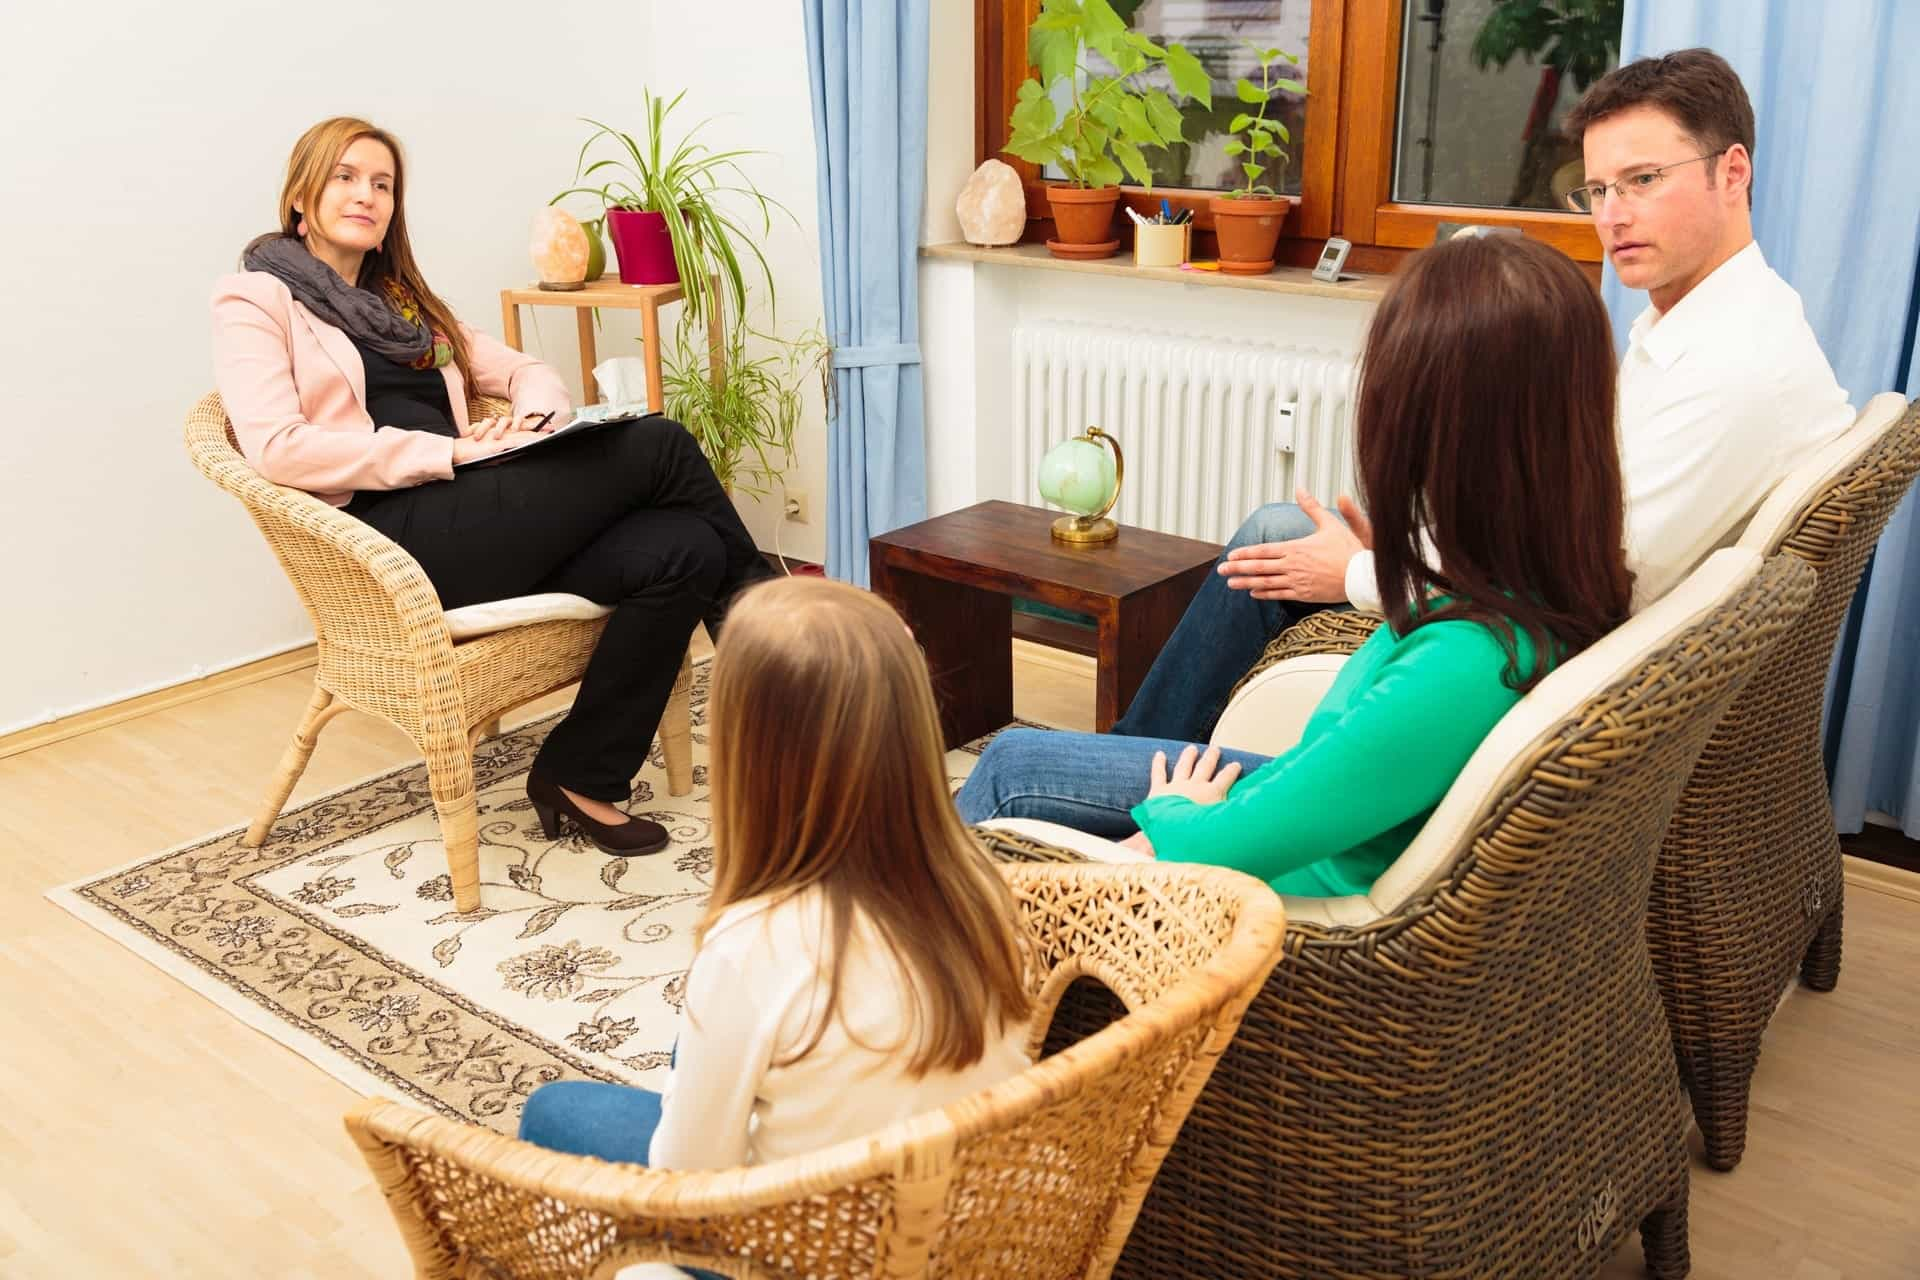 Family therapy to discuss co-parenting